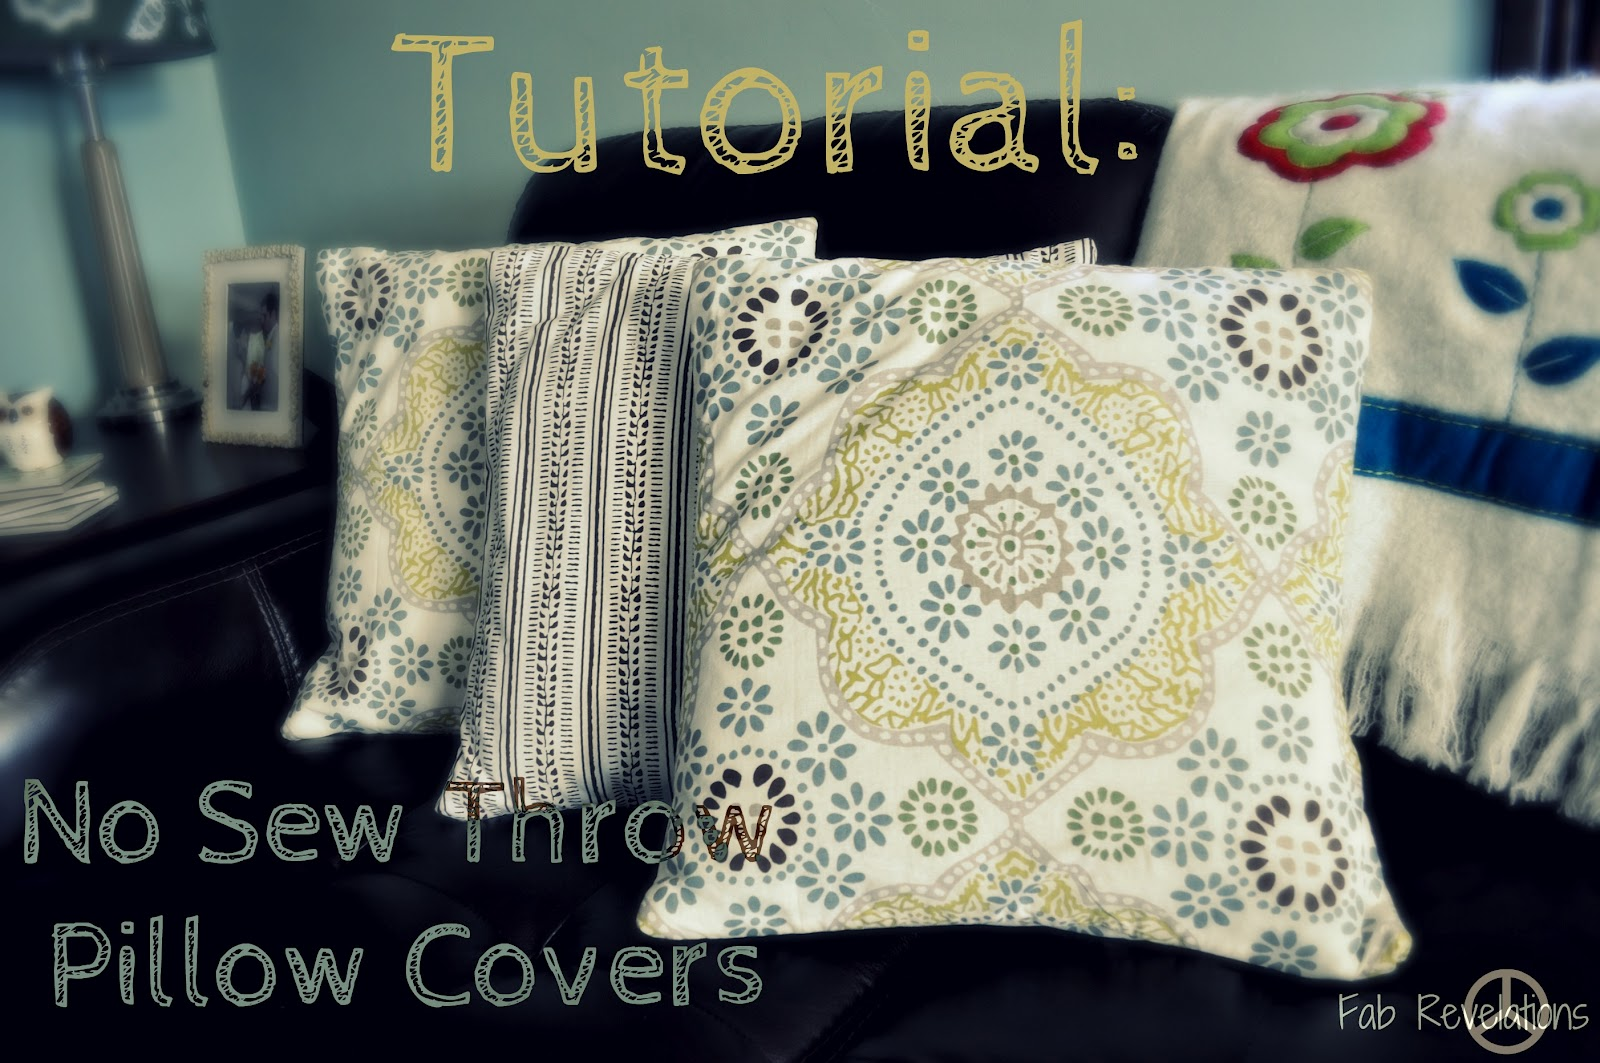 No Sew Decorative Pillow Covers : terry s go round: No Sew Throw Pillow Covers Tutorial